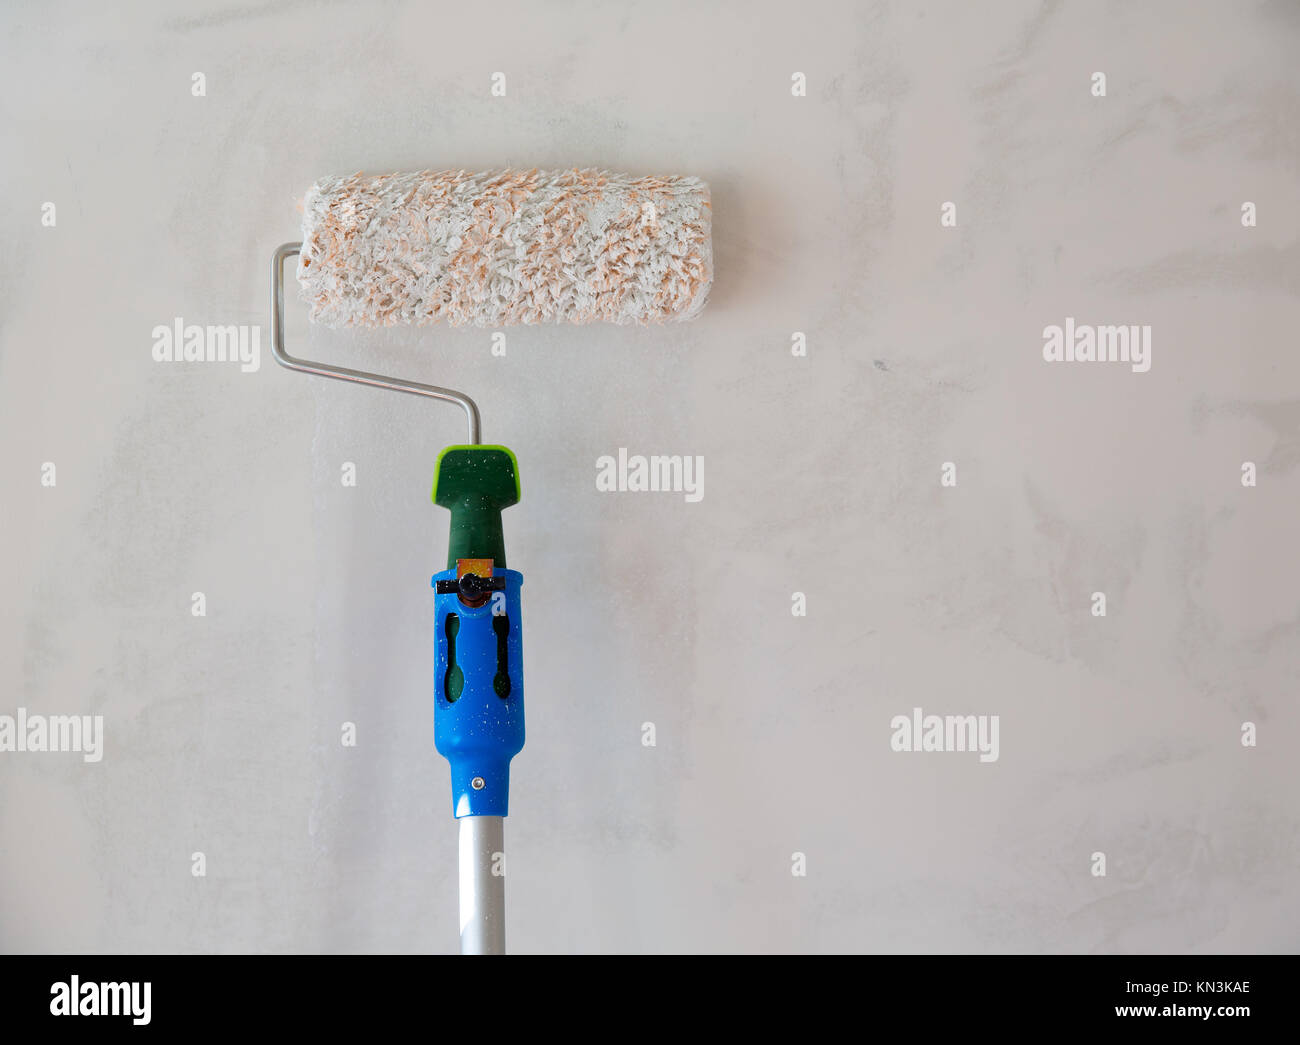 Paint roller for painting wall after plastering plaste. Stock Photo